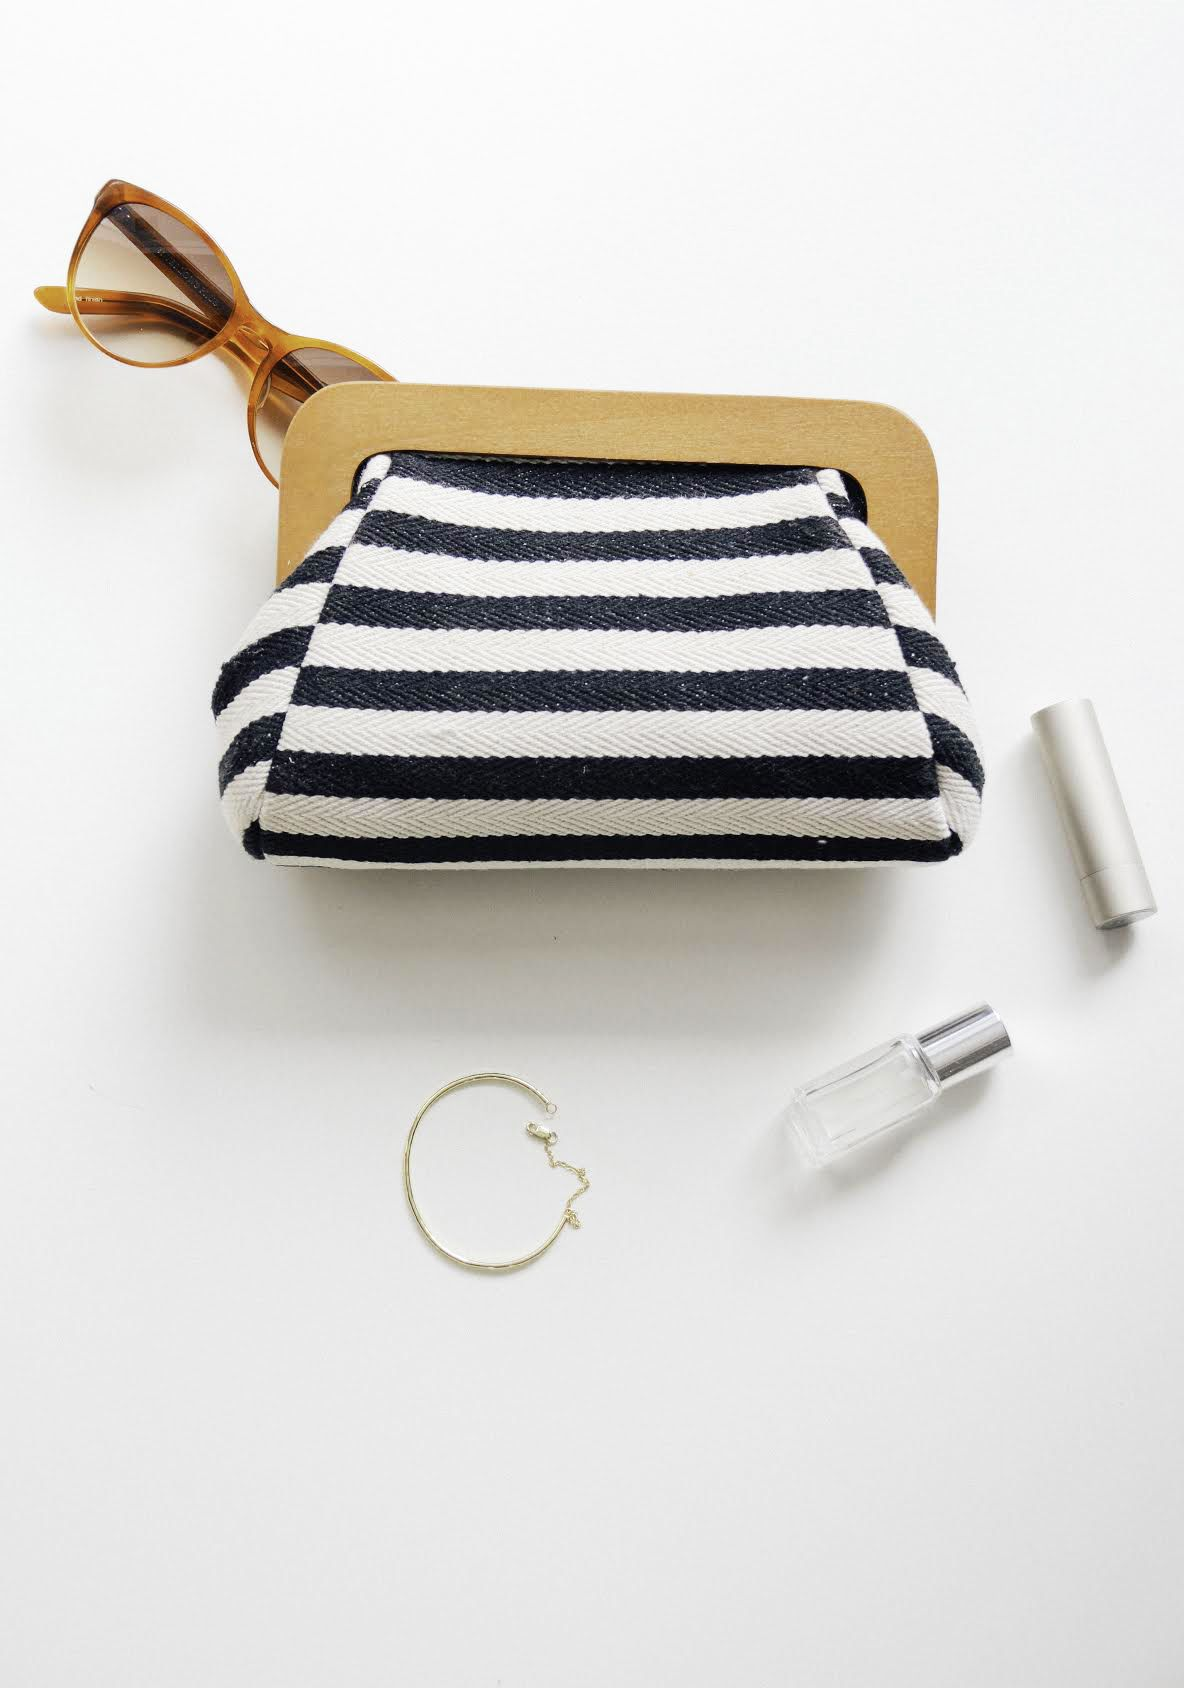 Striped Wooden Frame Clutch Things I Love Bag Accessories